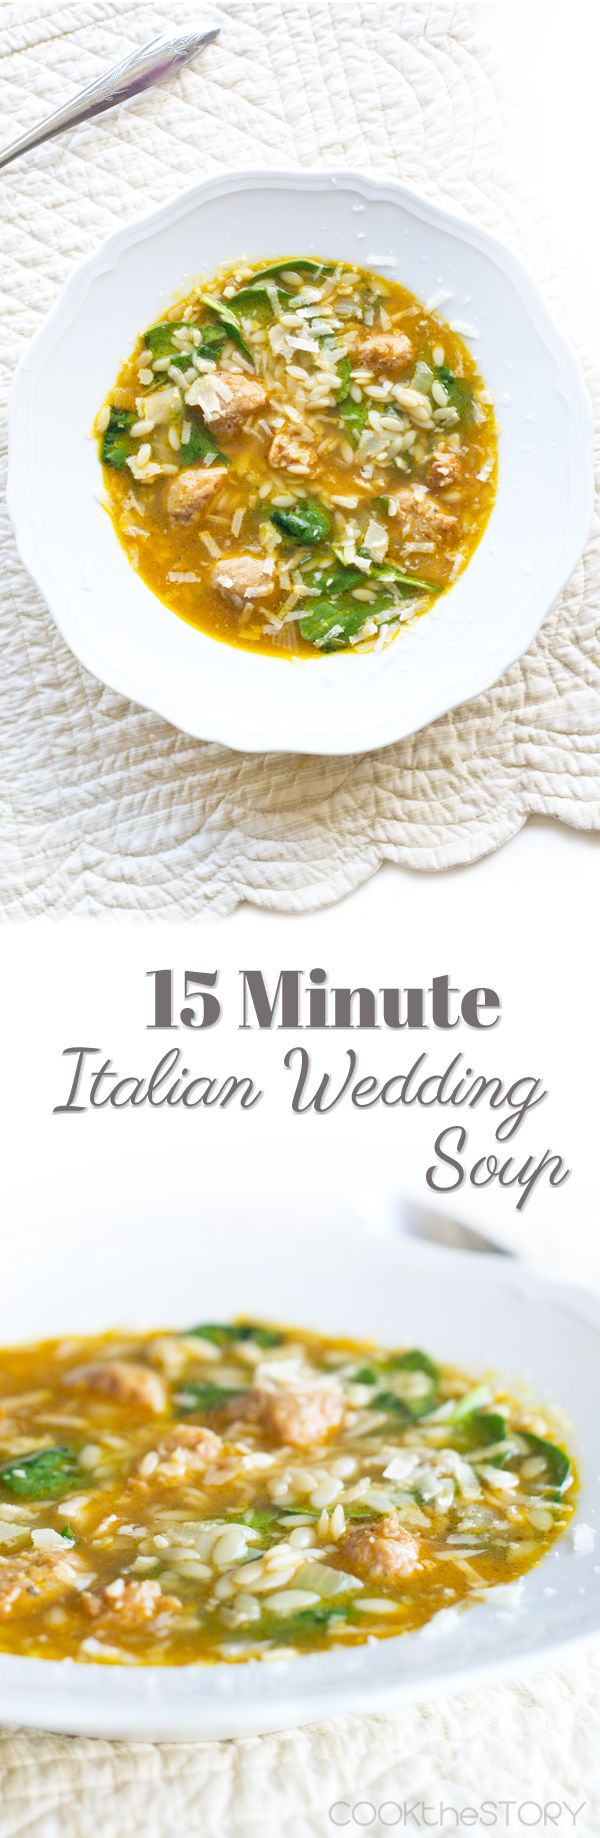 15 Minute Italian Wedding Soup recipe - chicken sausage, spinach, and orzo pasta make this quick and easy soup recipe so flavorful.